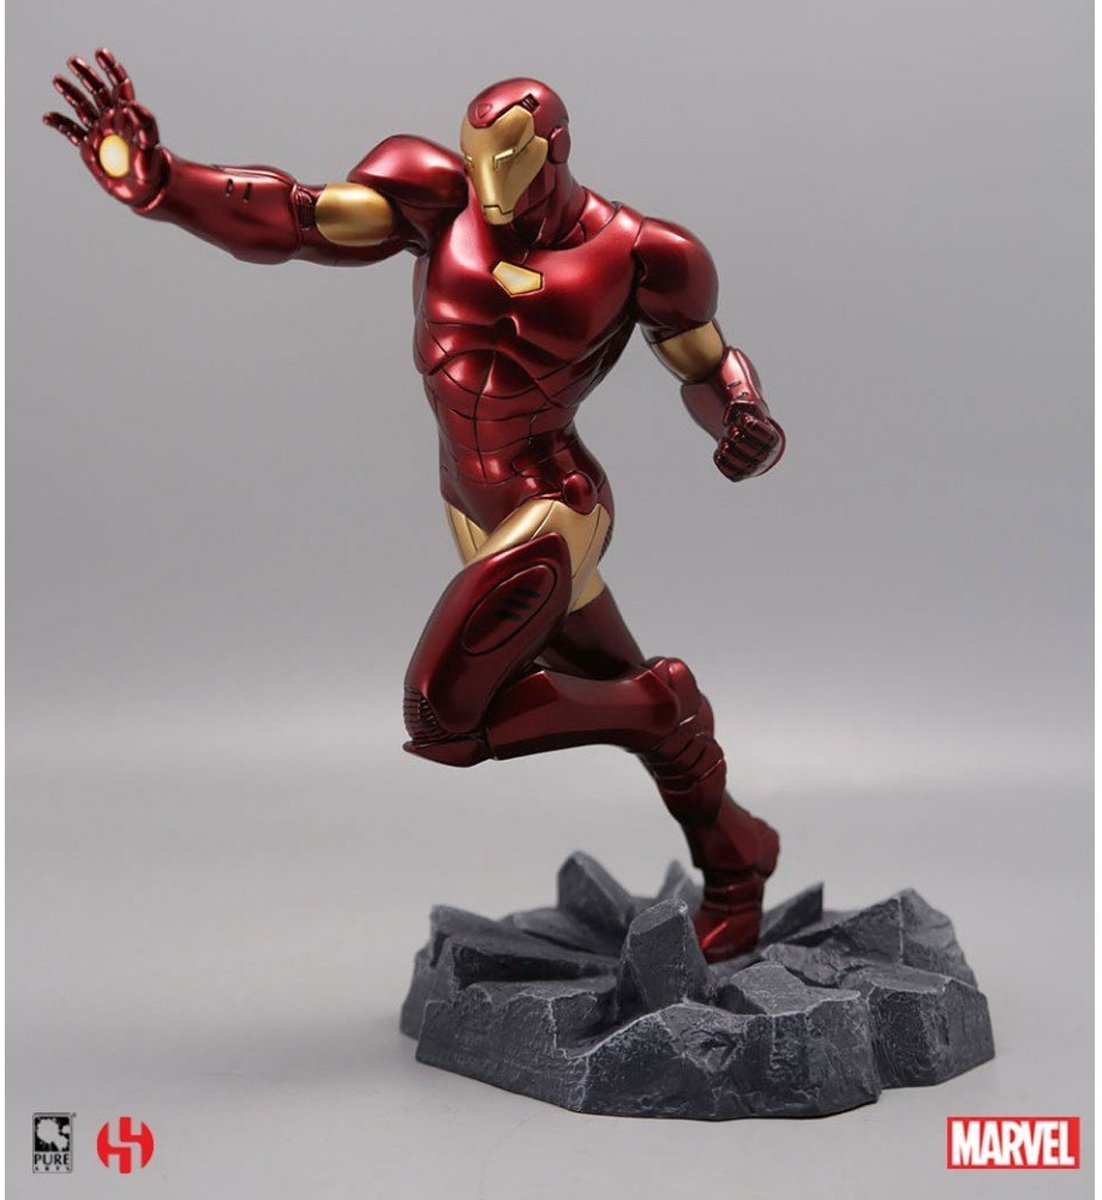 Marvel Iron Man Civil War Statue